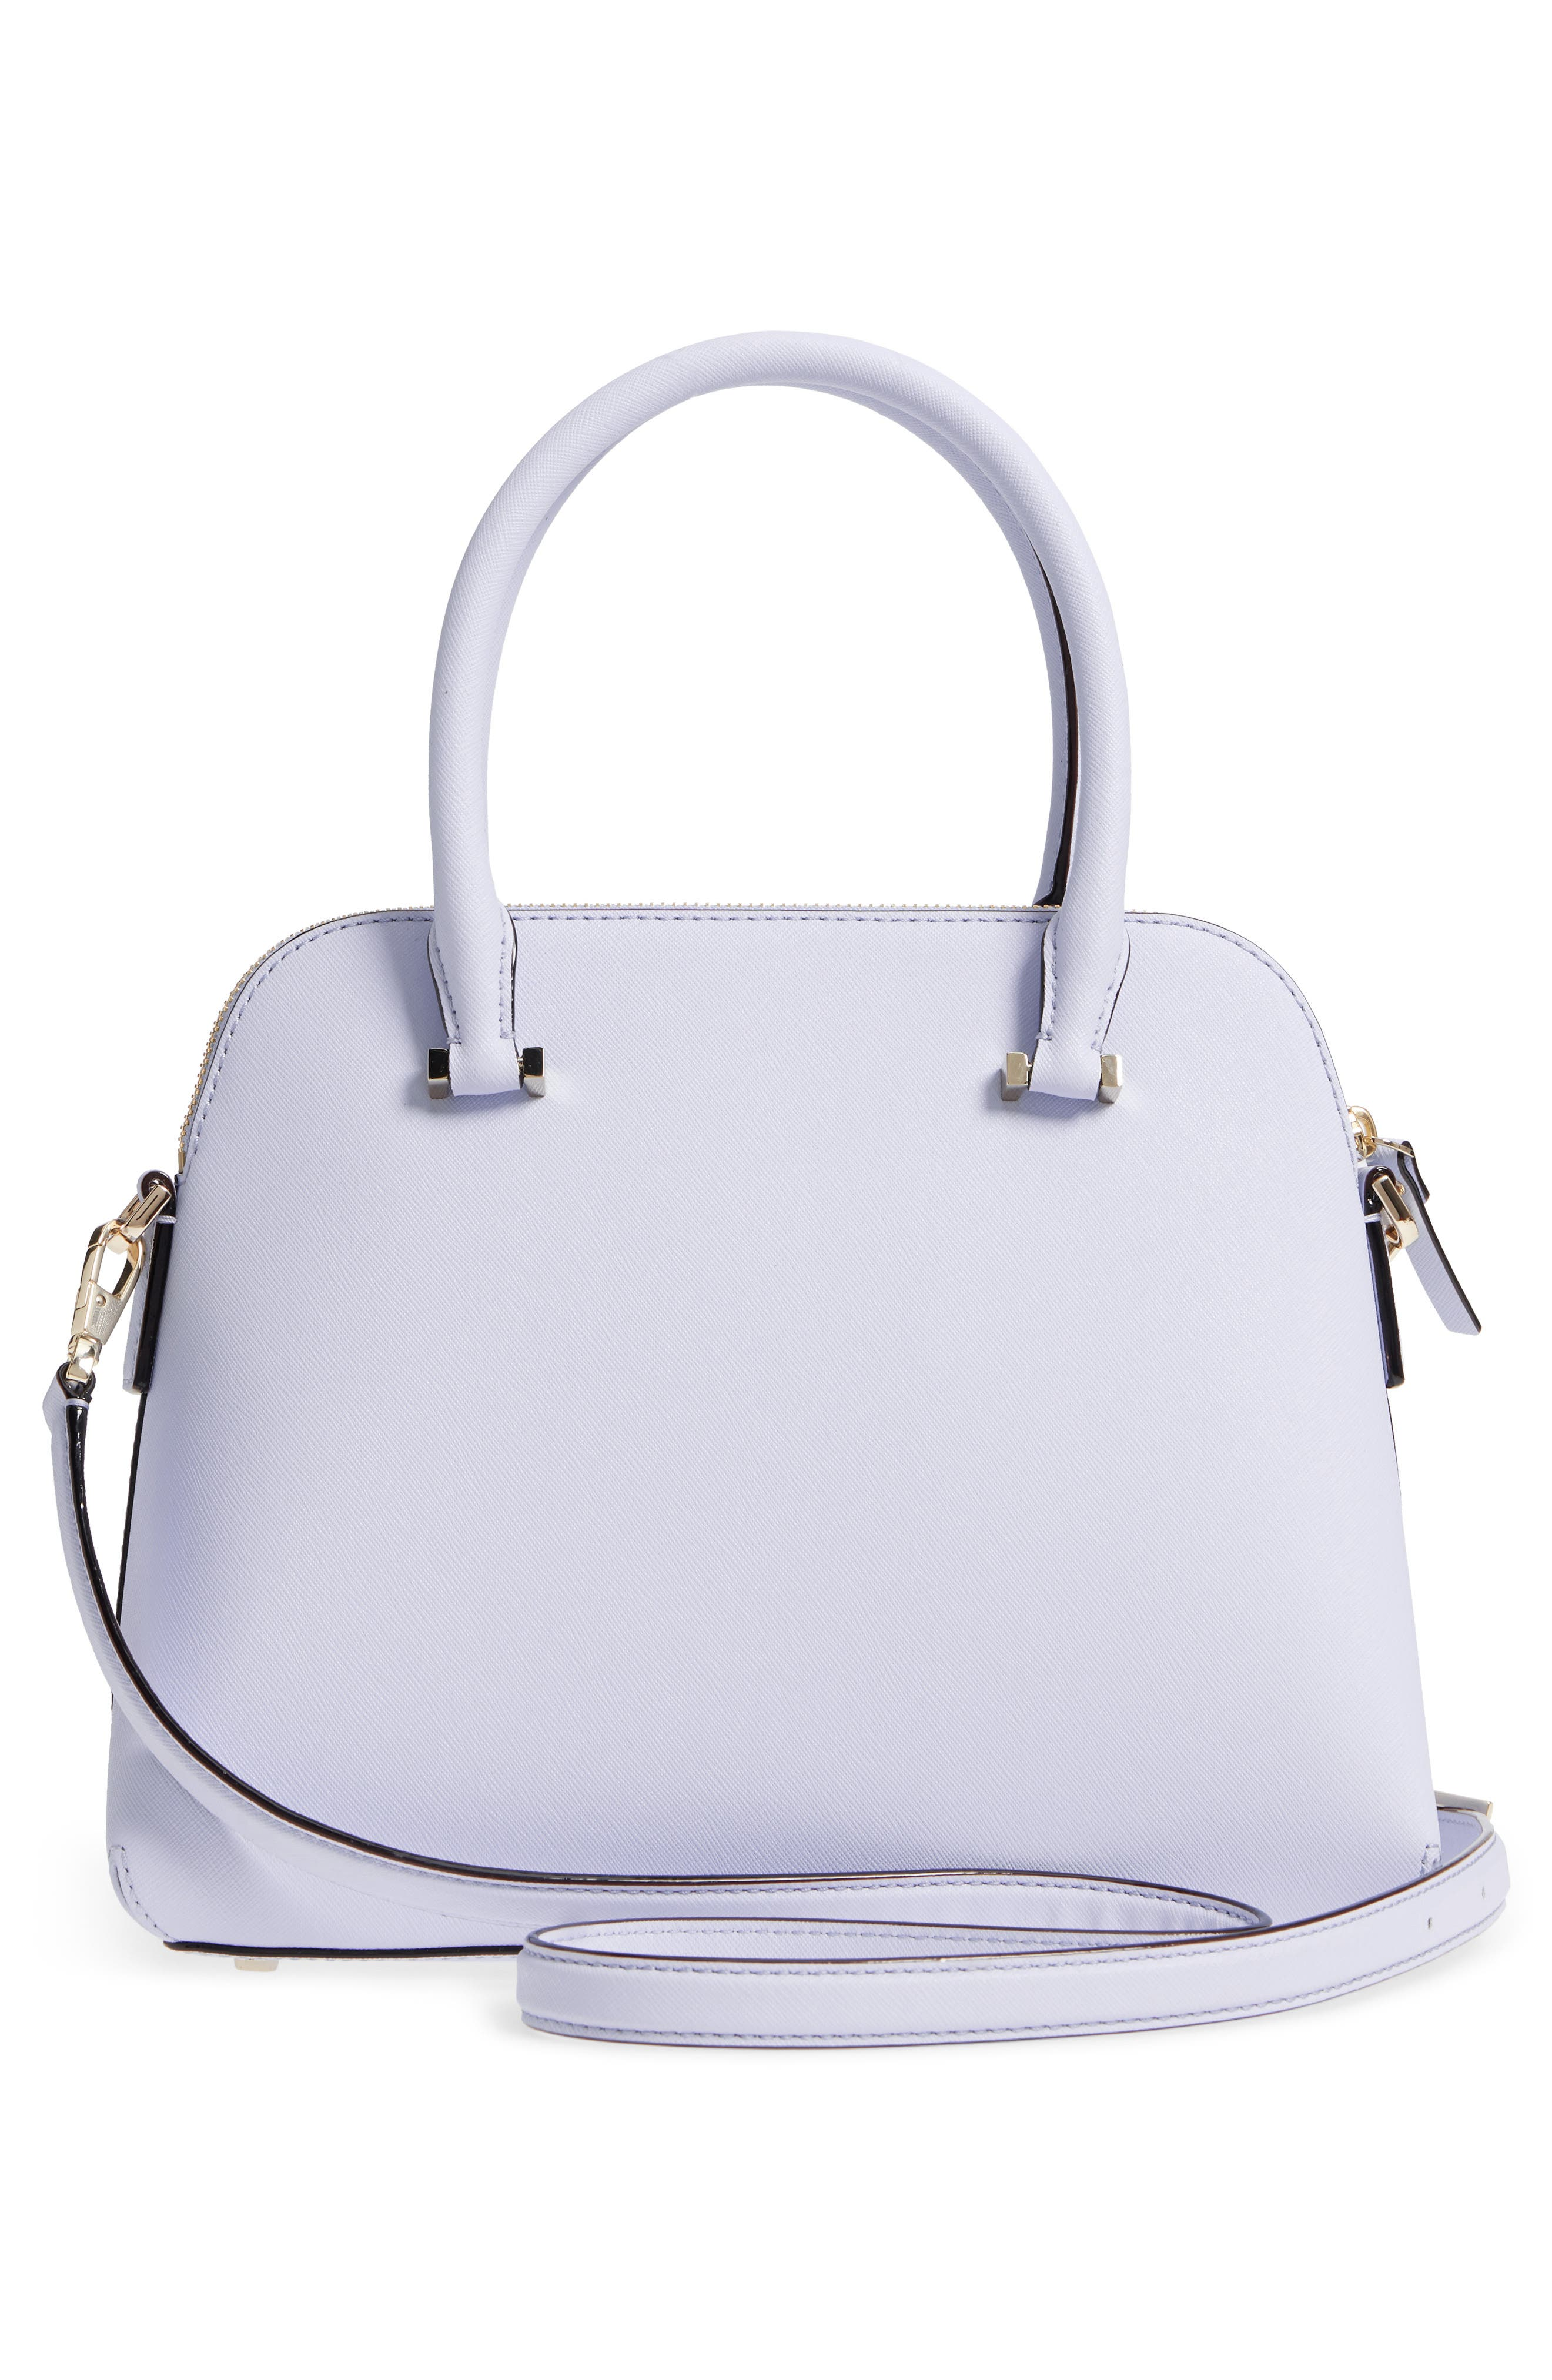 cameron street maise leather satchel,                             Alternate thumbnail 3, color,                             Morning Dawn